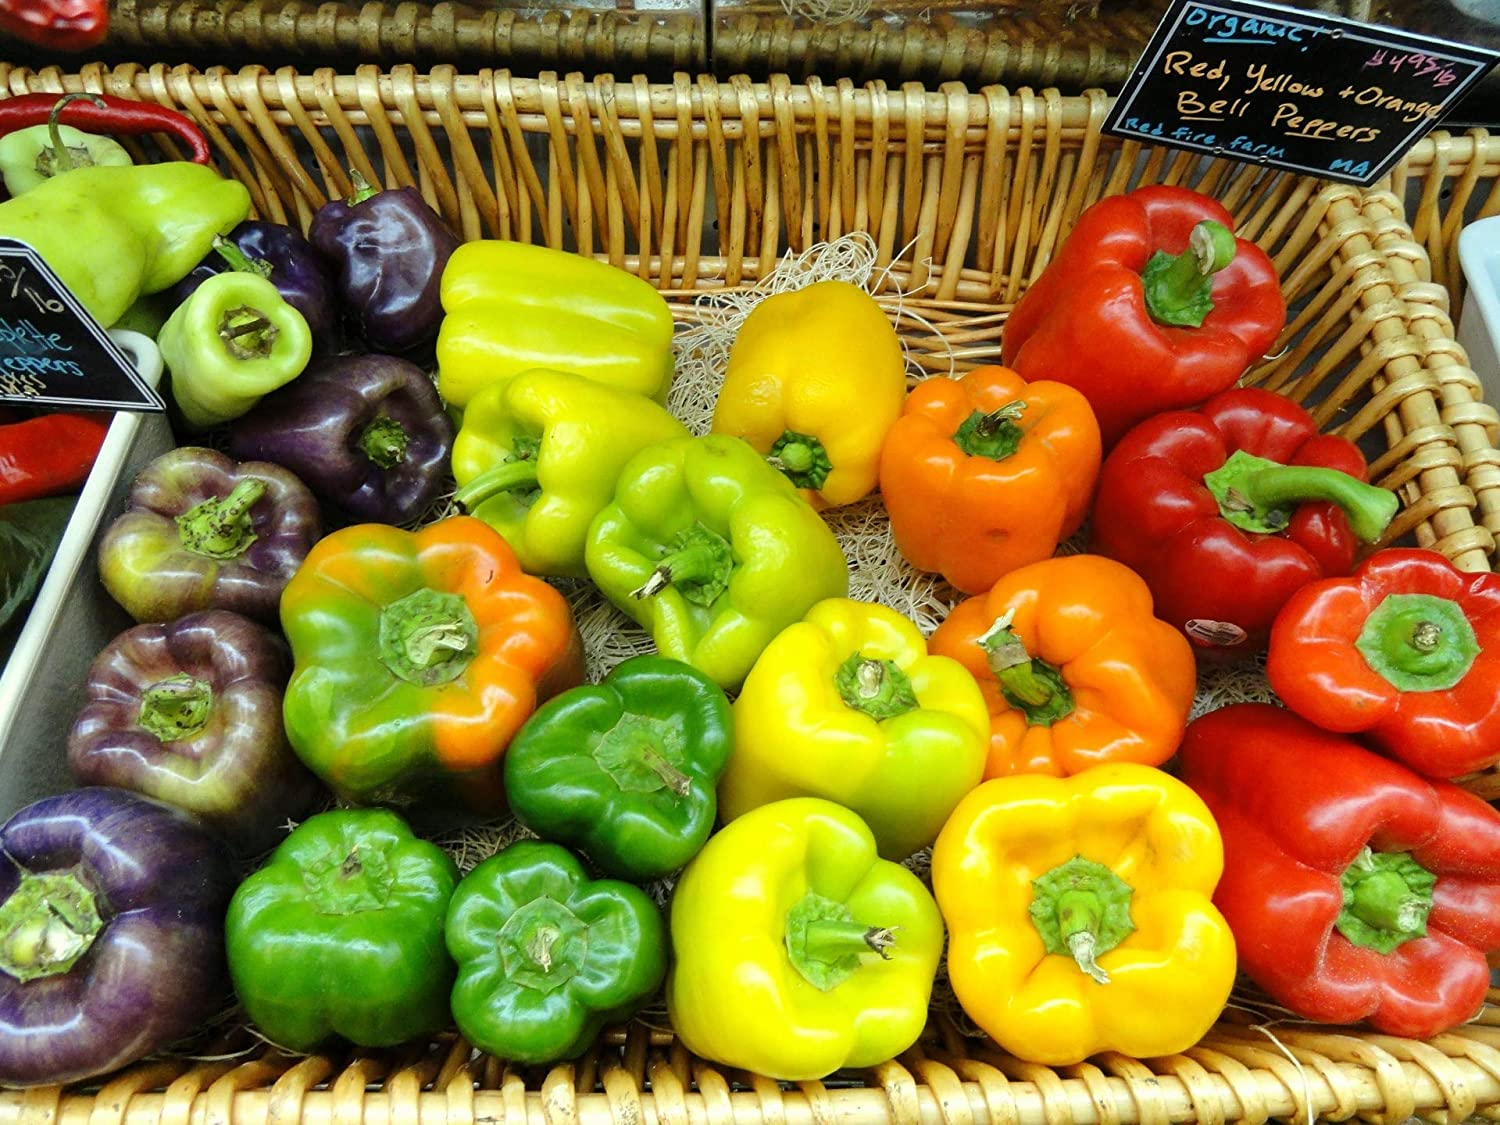 Zellajake Farm and Garden Rainbow Bell Pepper Mix Buy Many Sizes to 1/4 LB Colors Heirloom #37 (120 Seeds, or 1 Gram)